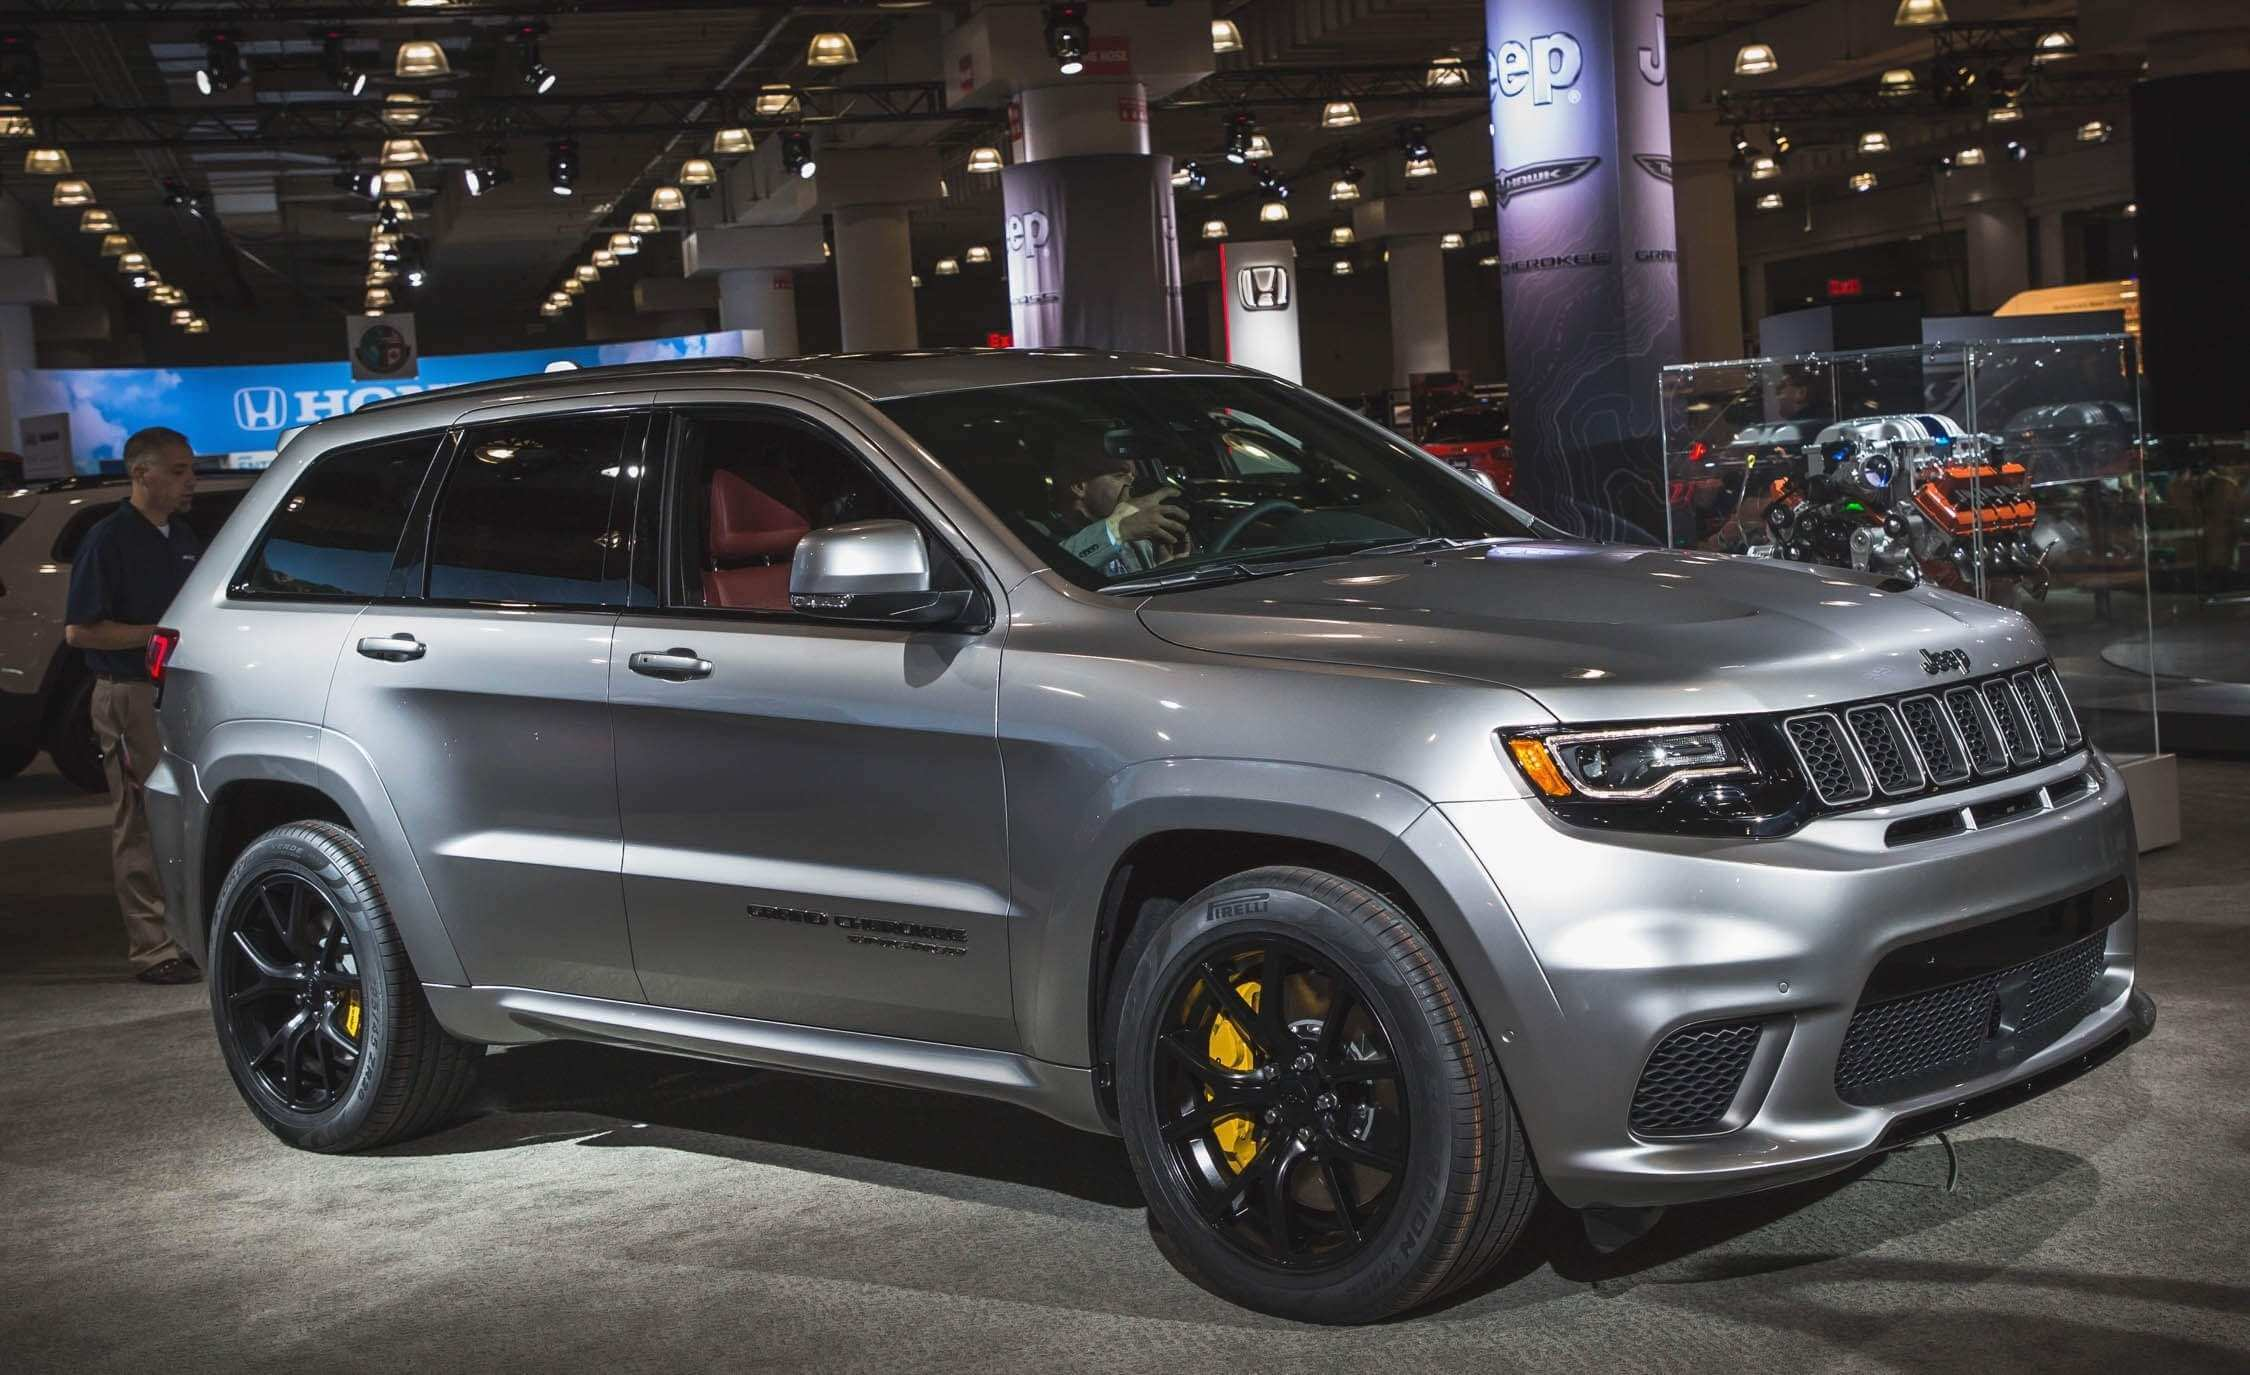 21 New 2020 Jeep Grand Cherokee Redesign Speed Test for 2020 Jeep Grand Cherokee Redesign